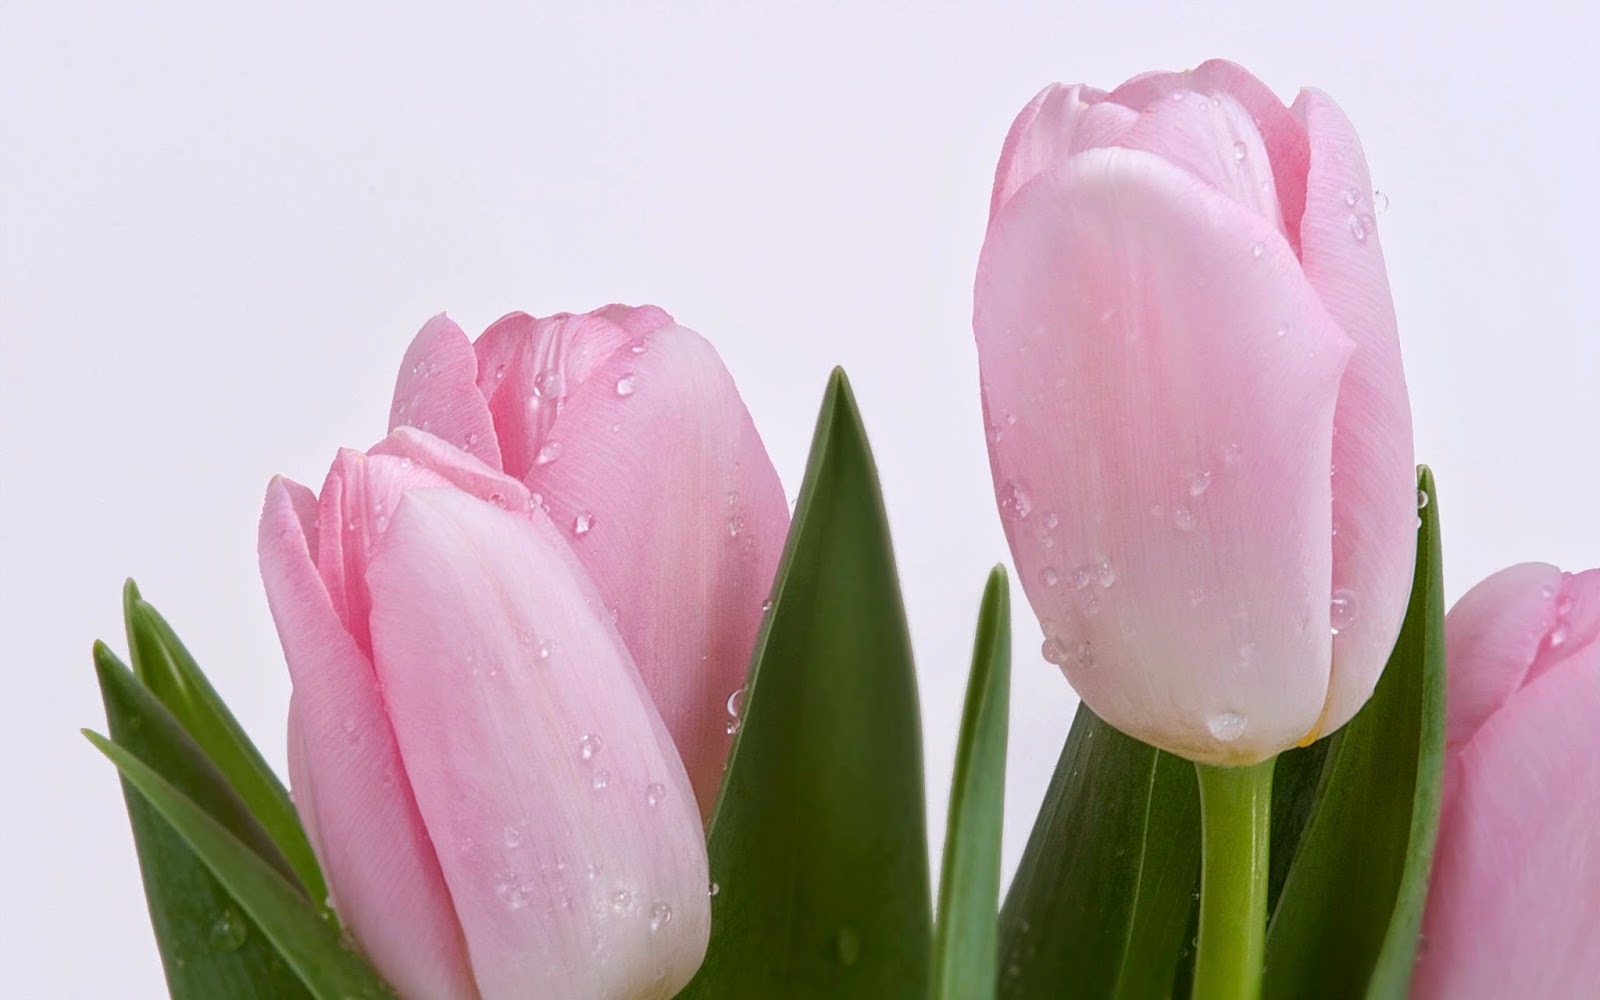 Mohan Name 3d Wallpapers Hd Wallpapers Hdwallpapers Org In Nice Flowers